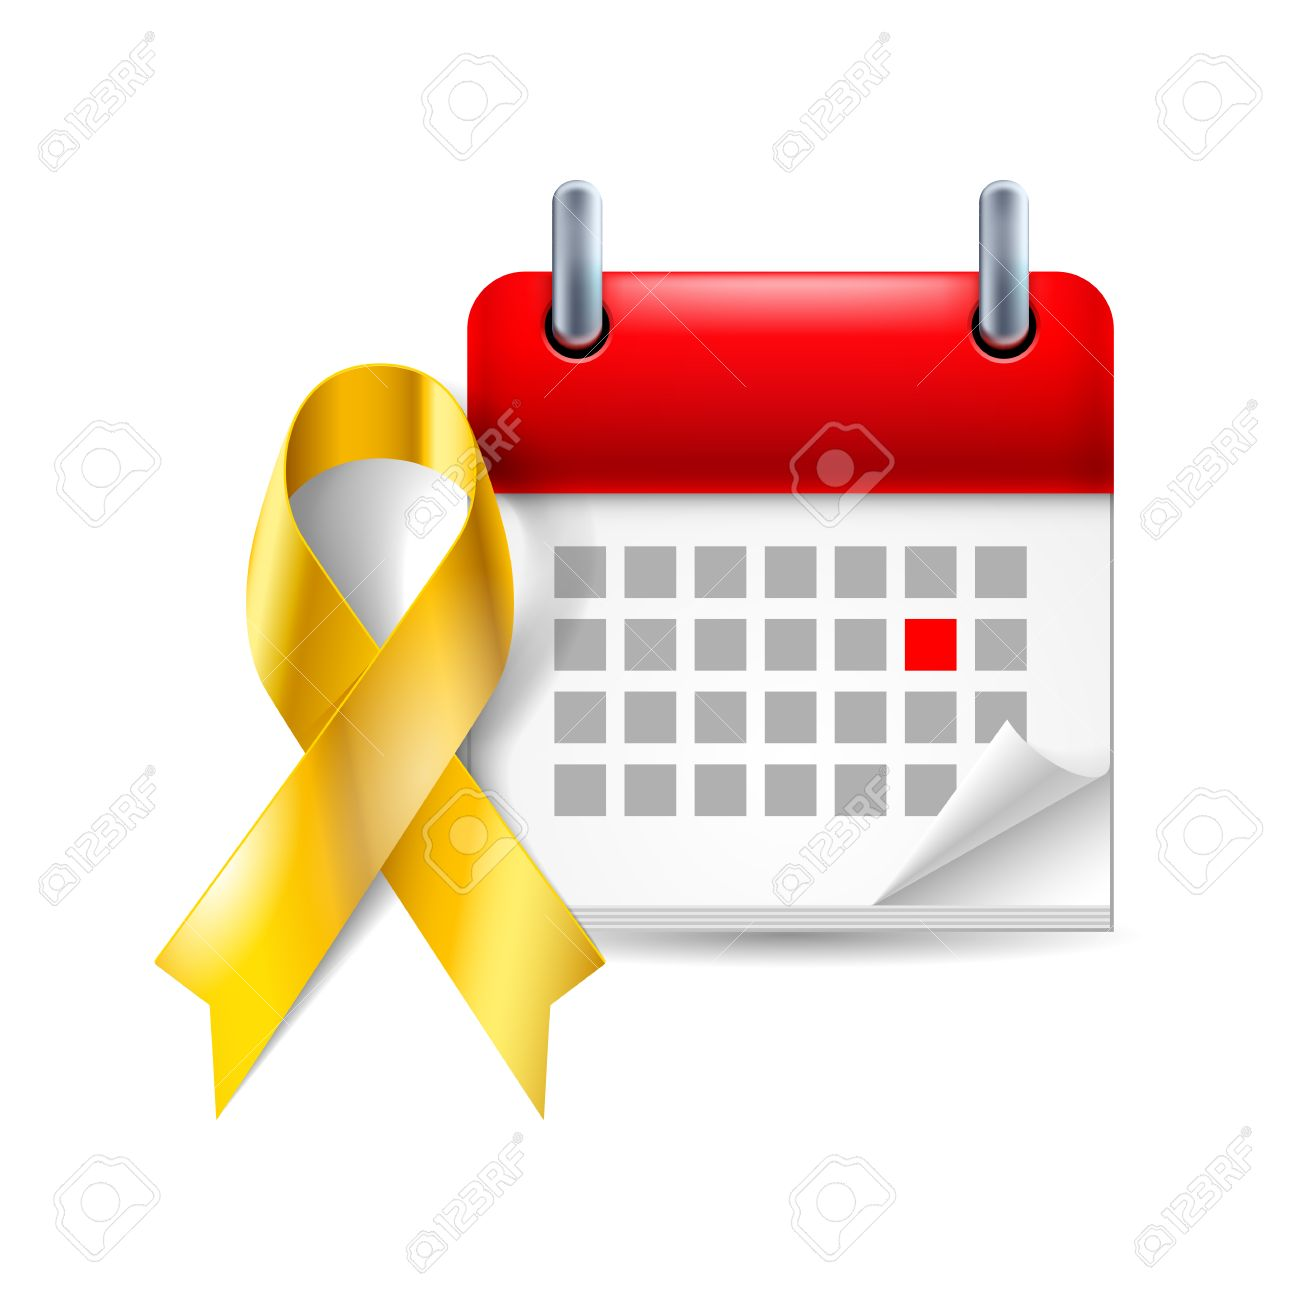 Gold Awareness Ribbon And Calendar With Marked Day Childhood